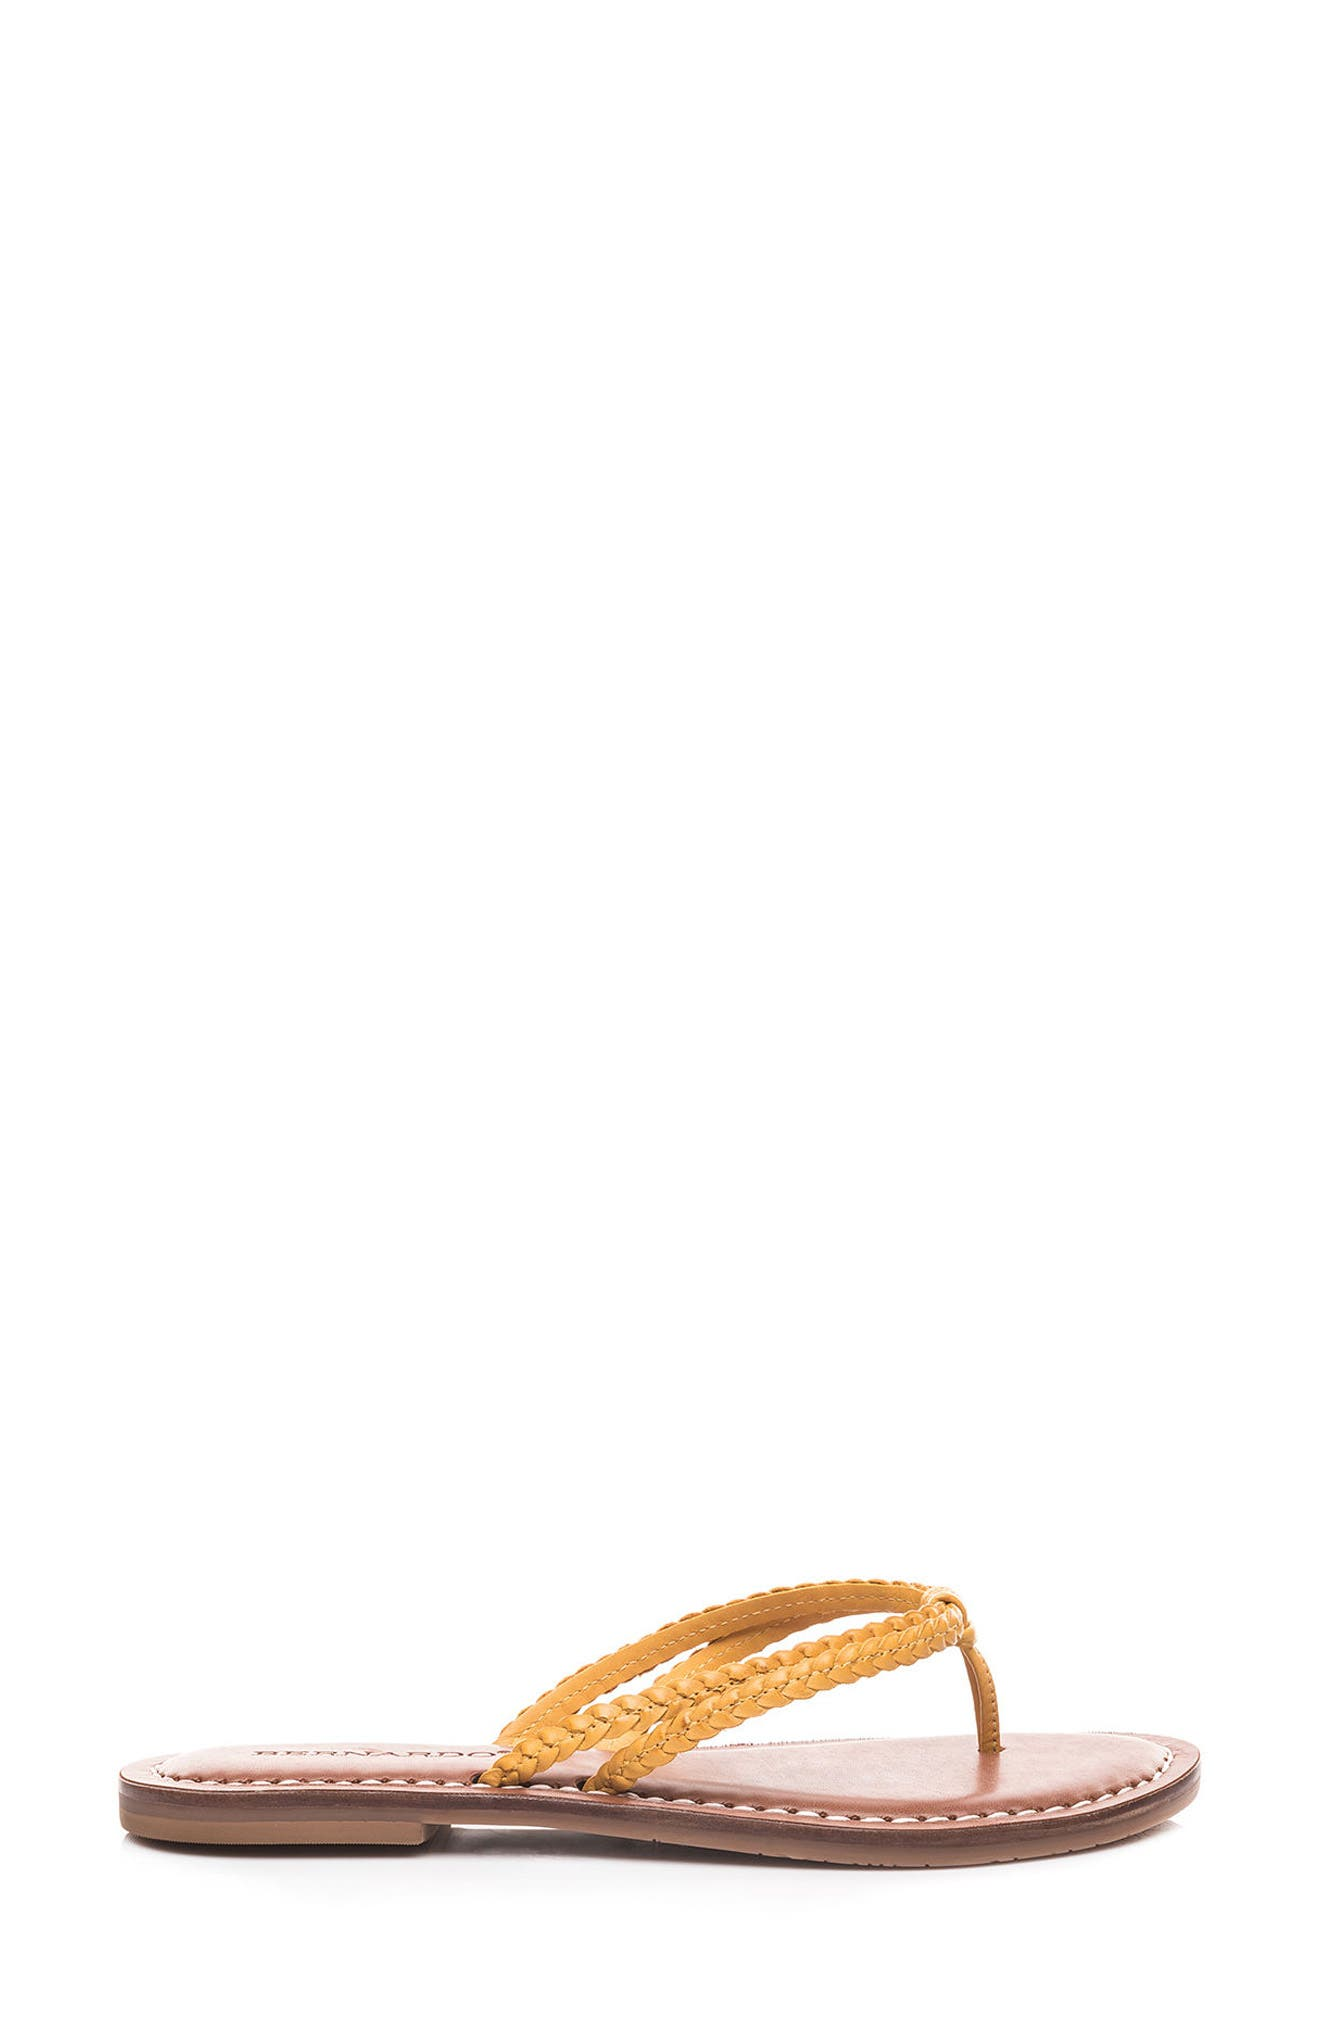 Bernardo Greta Braided Strap Sandal,                             Alternate thumbnail 20, color,